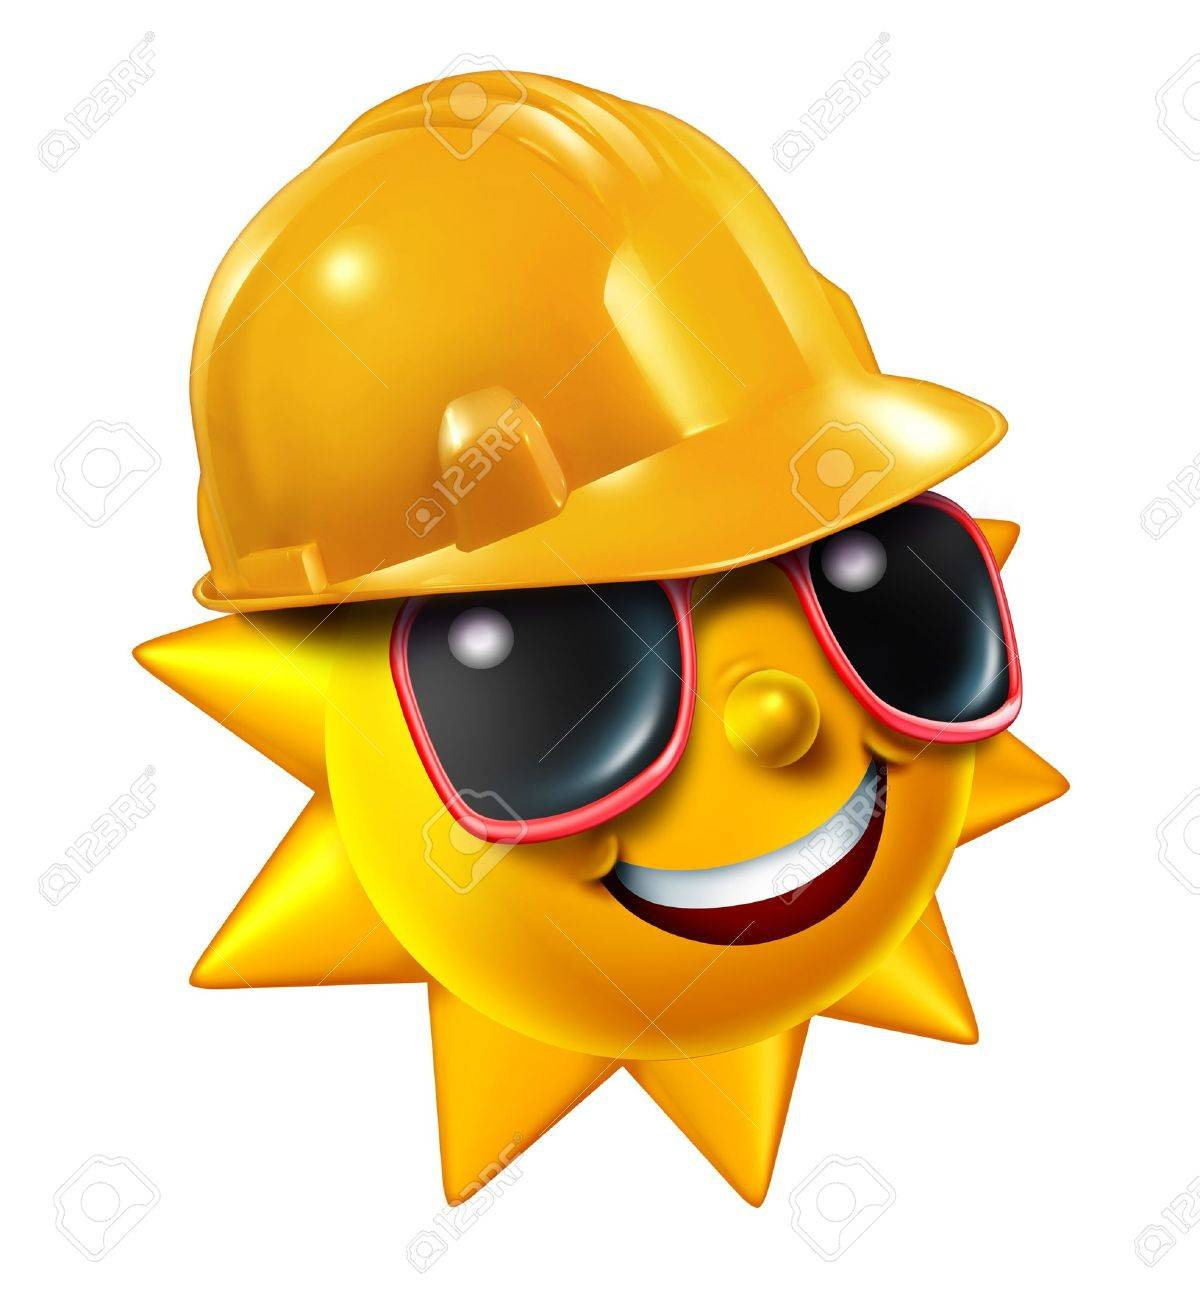 summer construction and renovation work projects in the hot season stock photo summer construction and renovation work projects in the hot season as a happy sun character sunglasses wearing a yellow worker protective